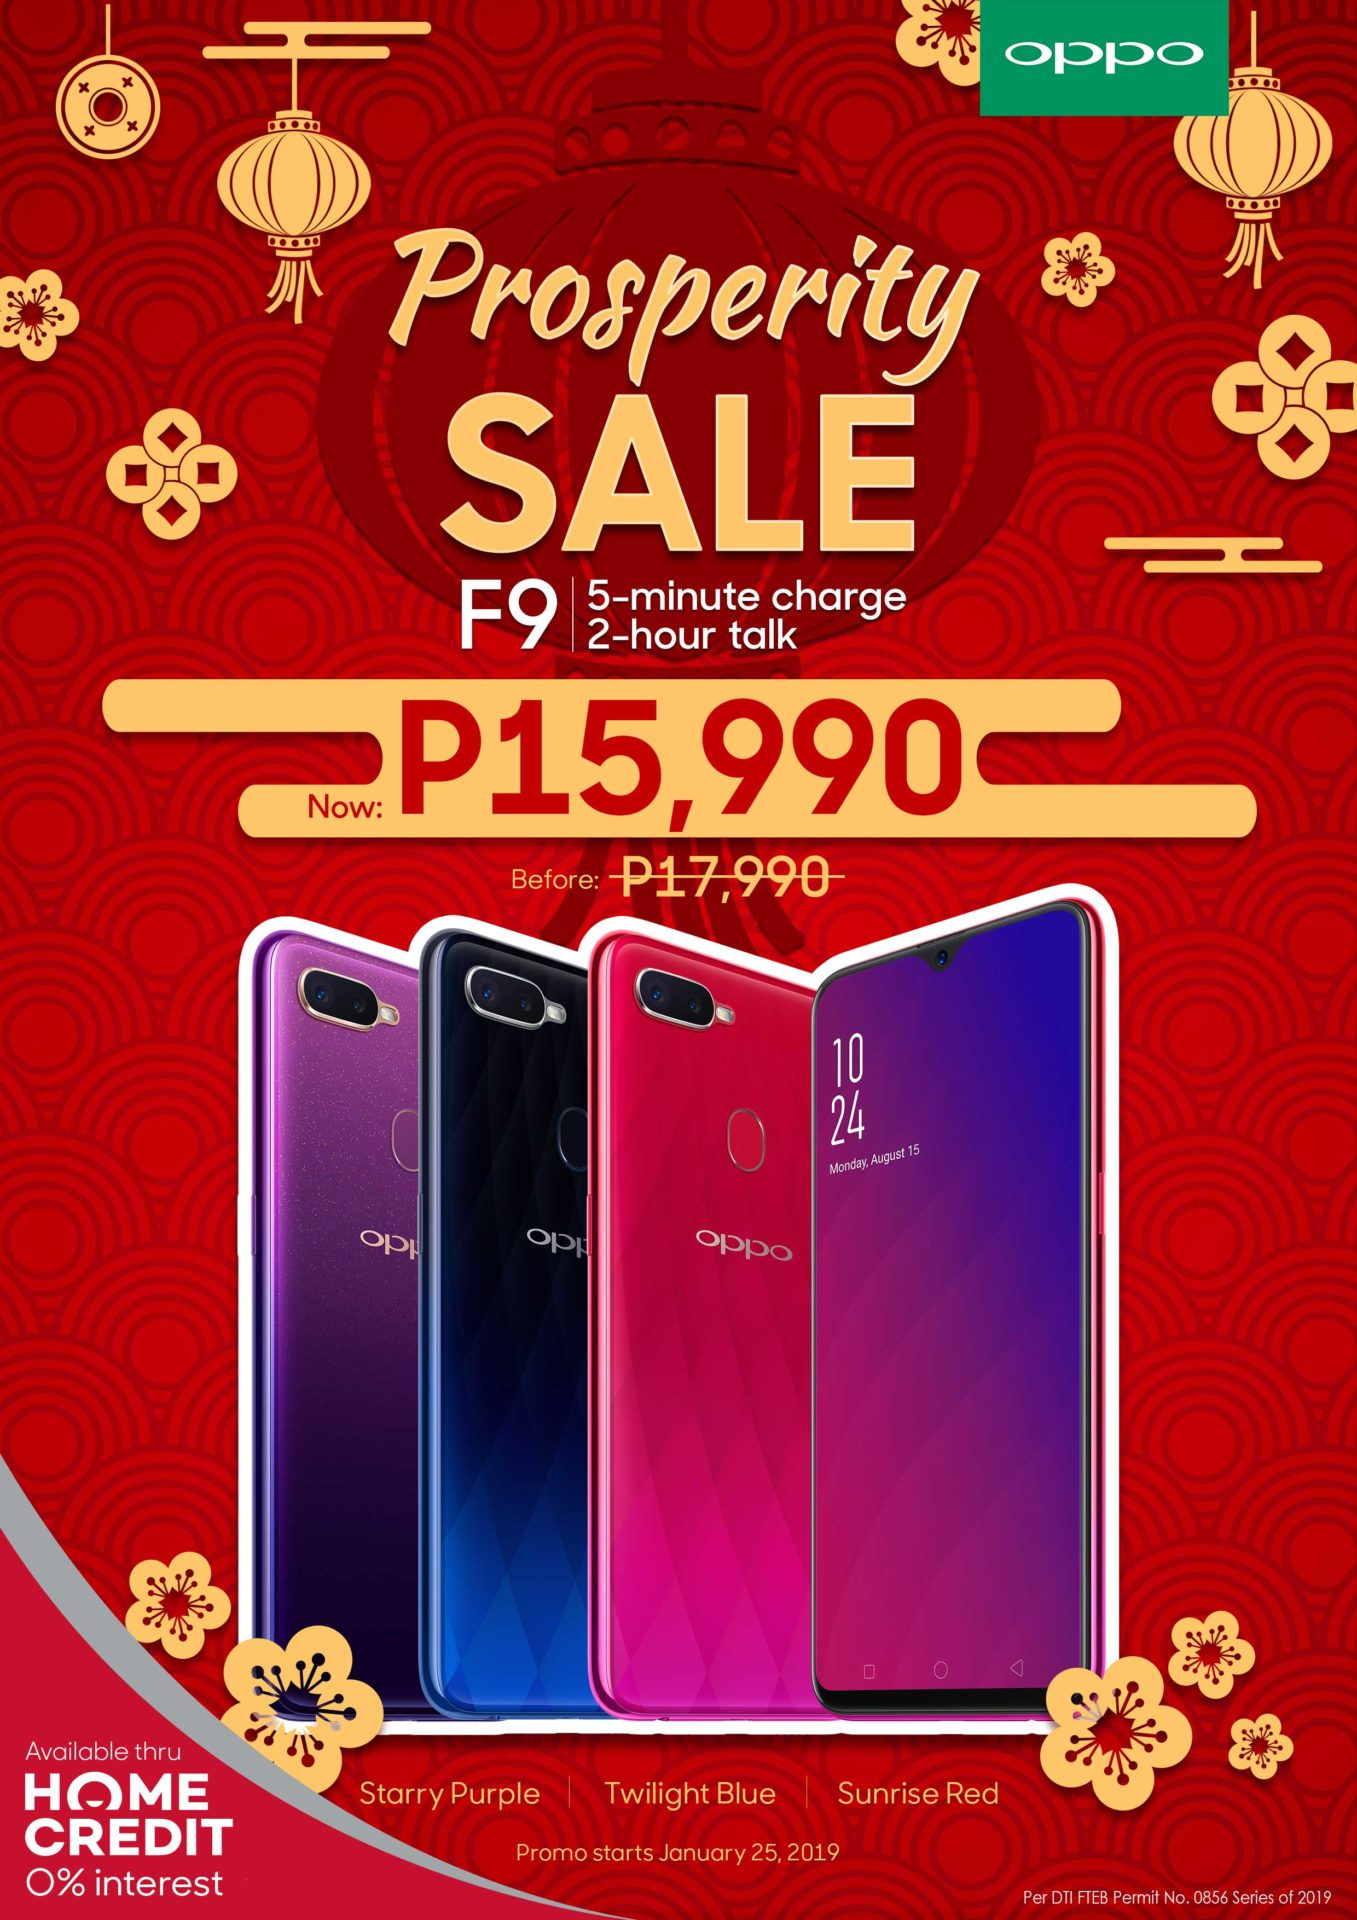 oppo f9, The OPPO F9 will be Priced at PhP15,990 Starting January 25!, Gadget Pilipinas